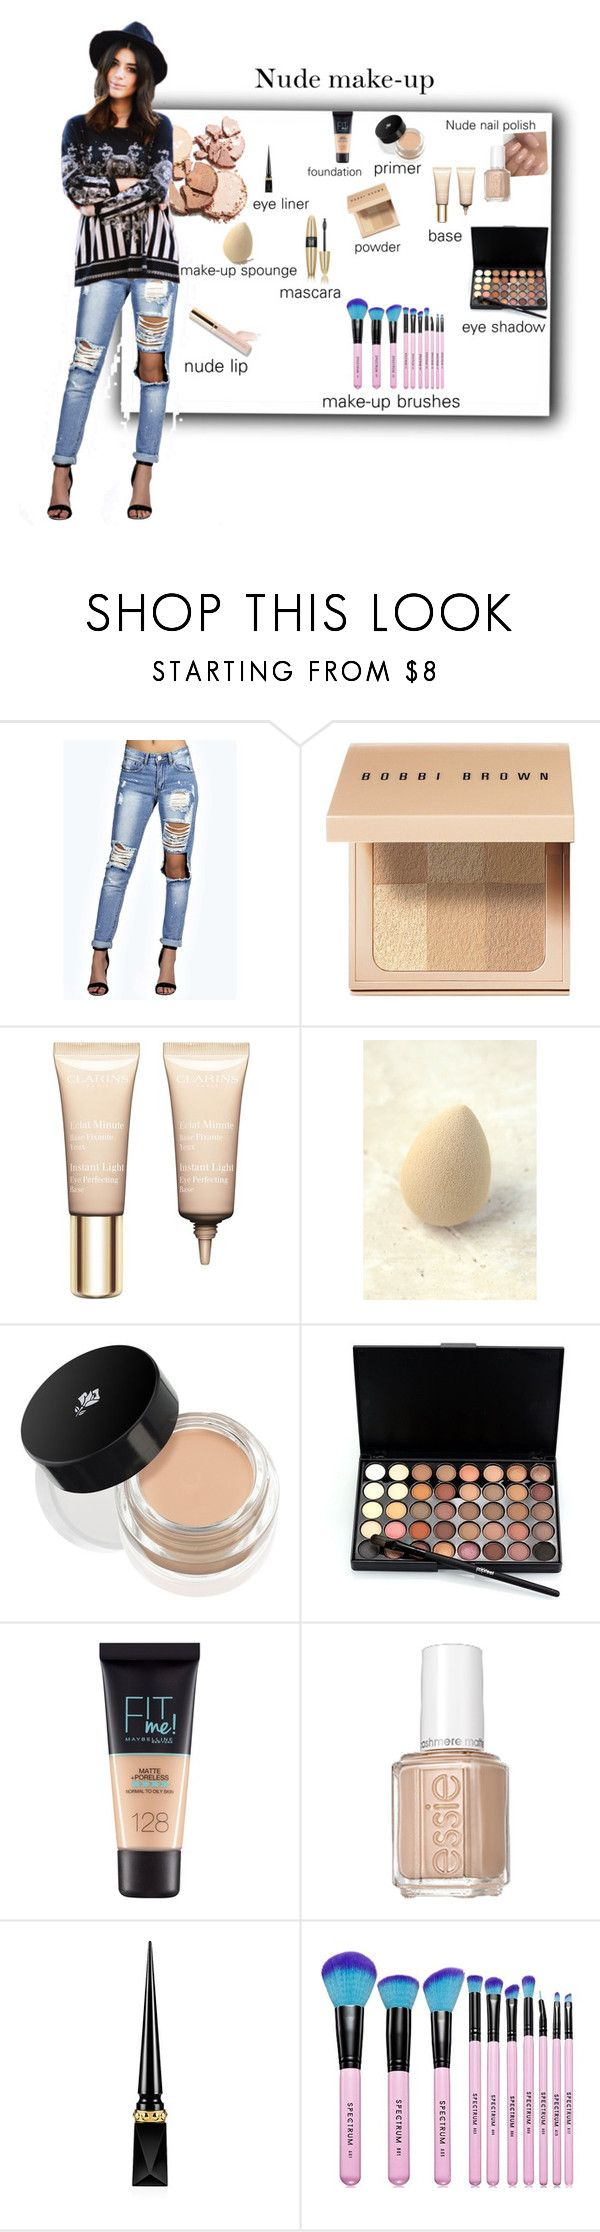 """What's in my make-up bag"" by tattooedmum ❤ liked on Polyvore featuring Boohoo, Bobbi Brown Cosmetics, Clarins, beautyblender, Lancôme, Maybelline, Essie, Victoria's Secret, Christian Louboutin and Spectrum"